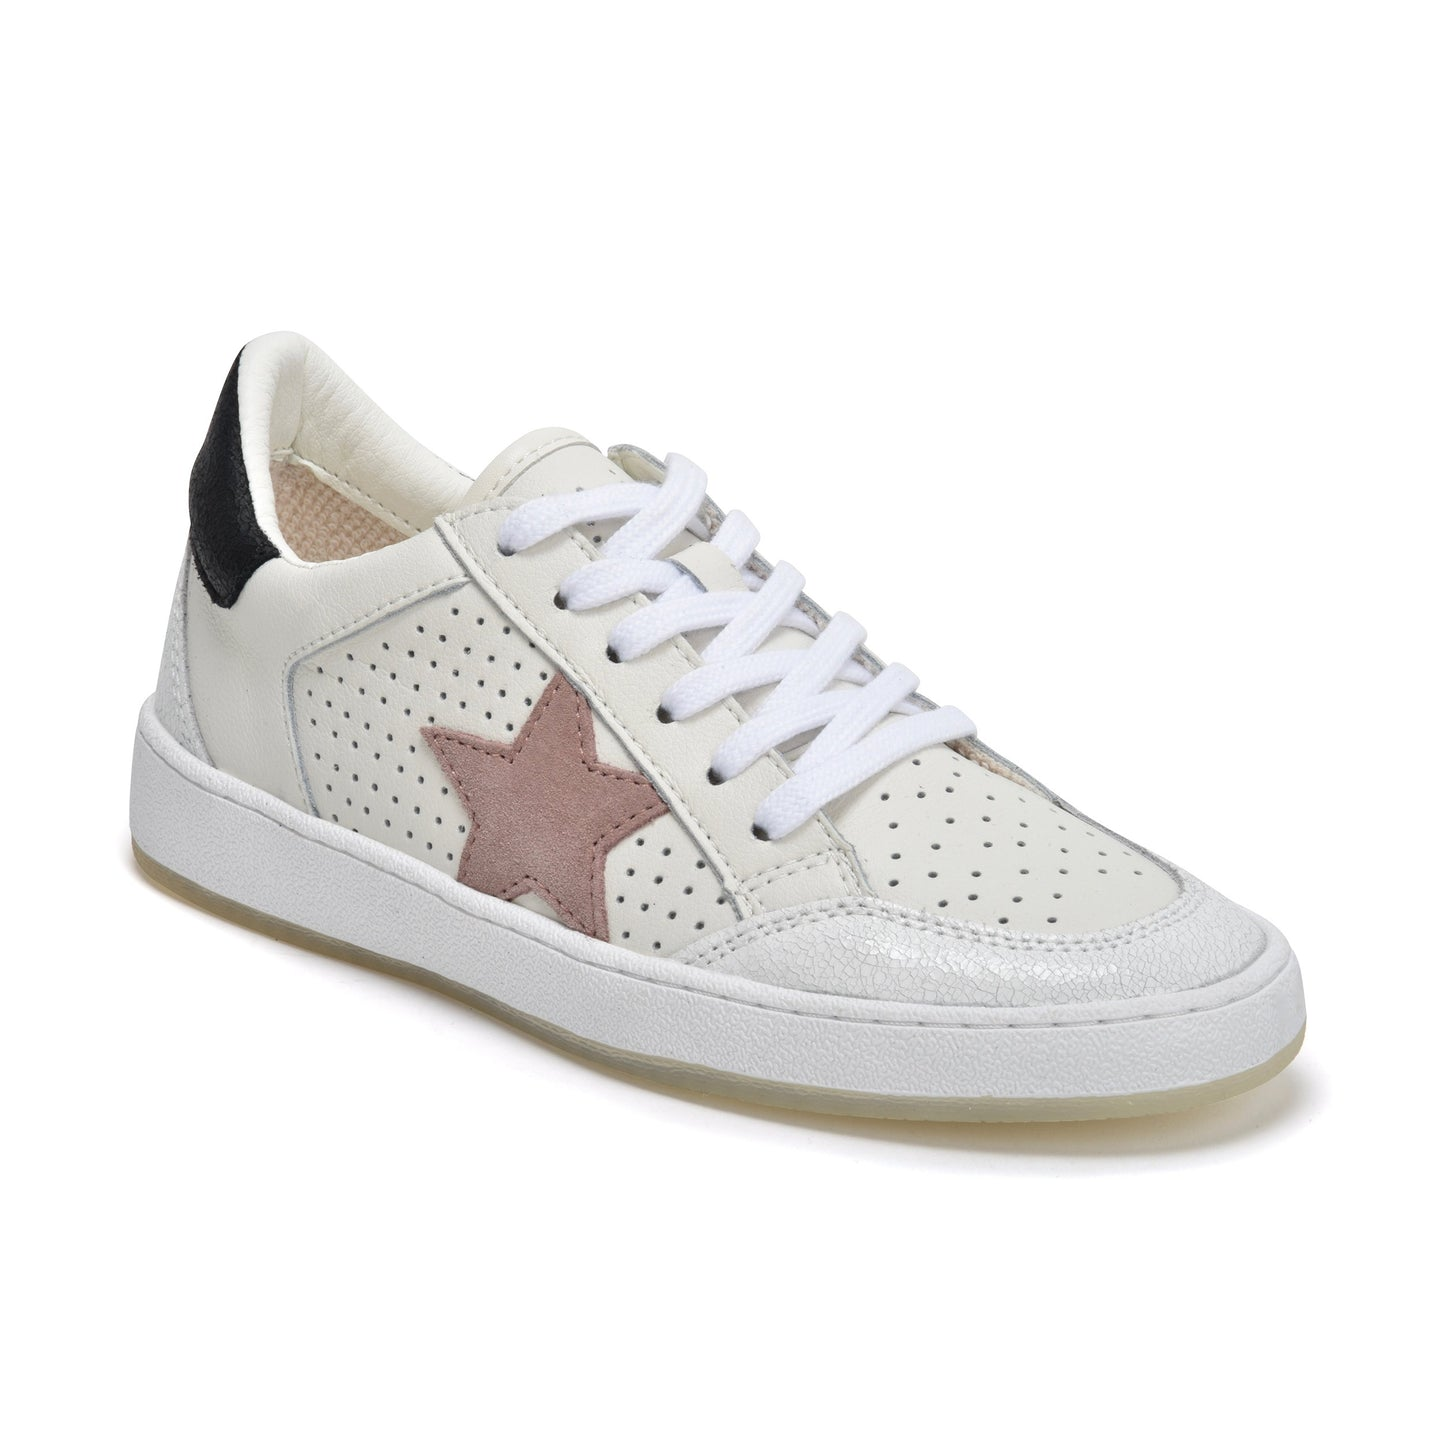 Ginette Low Top Sneaker in White/Taupe Multi